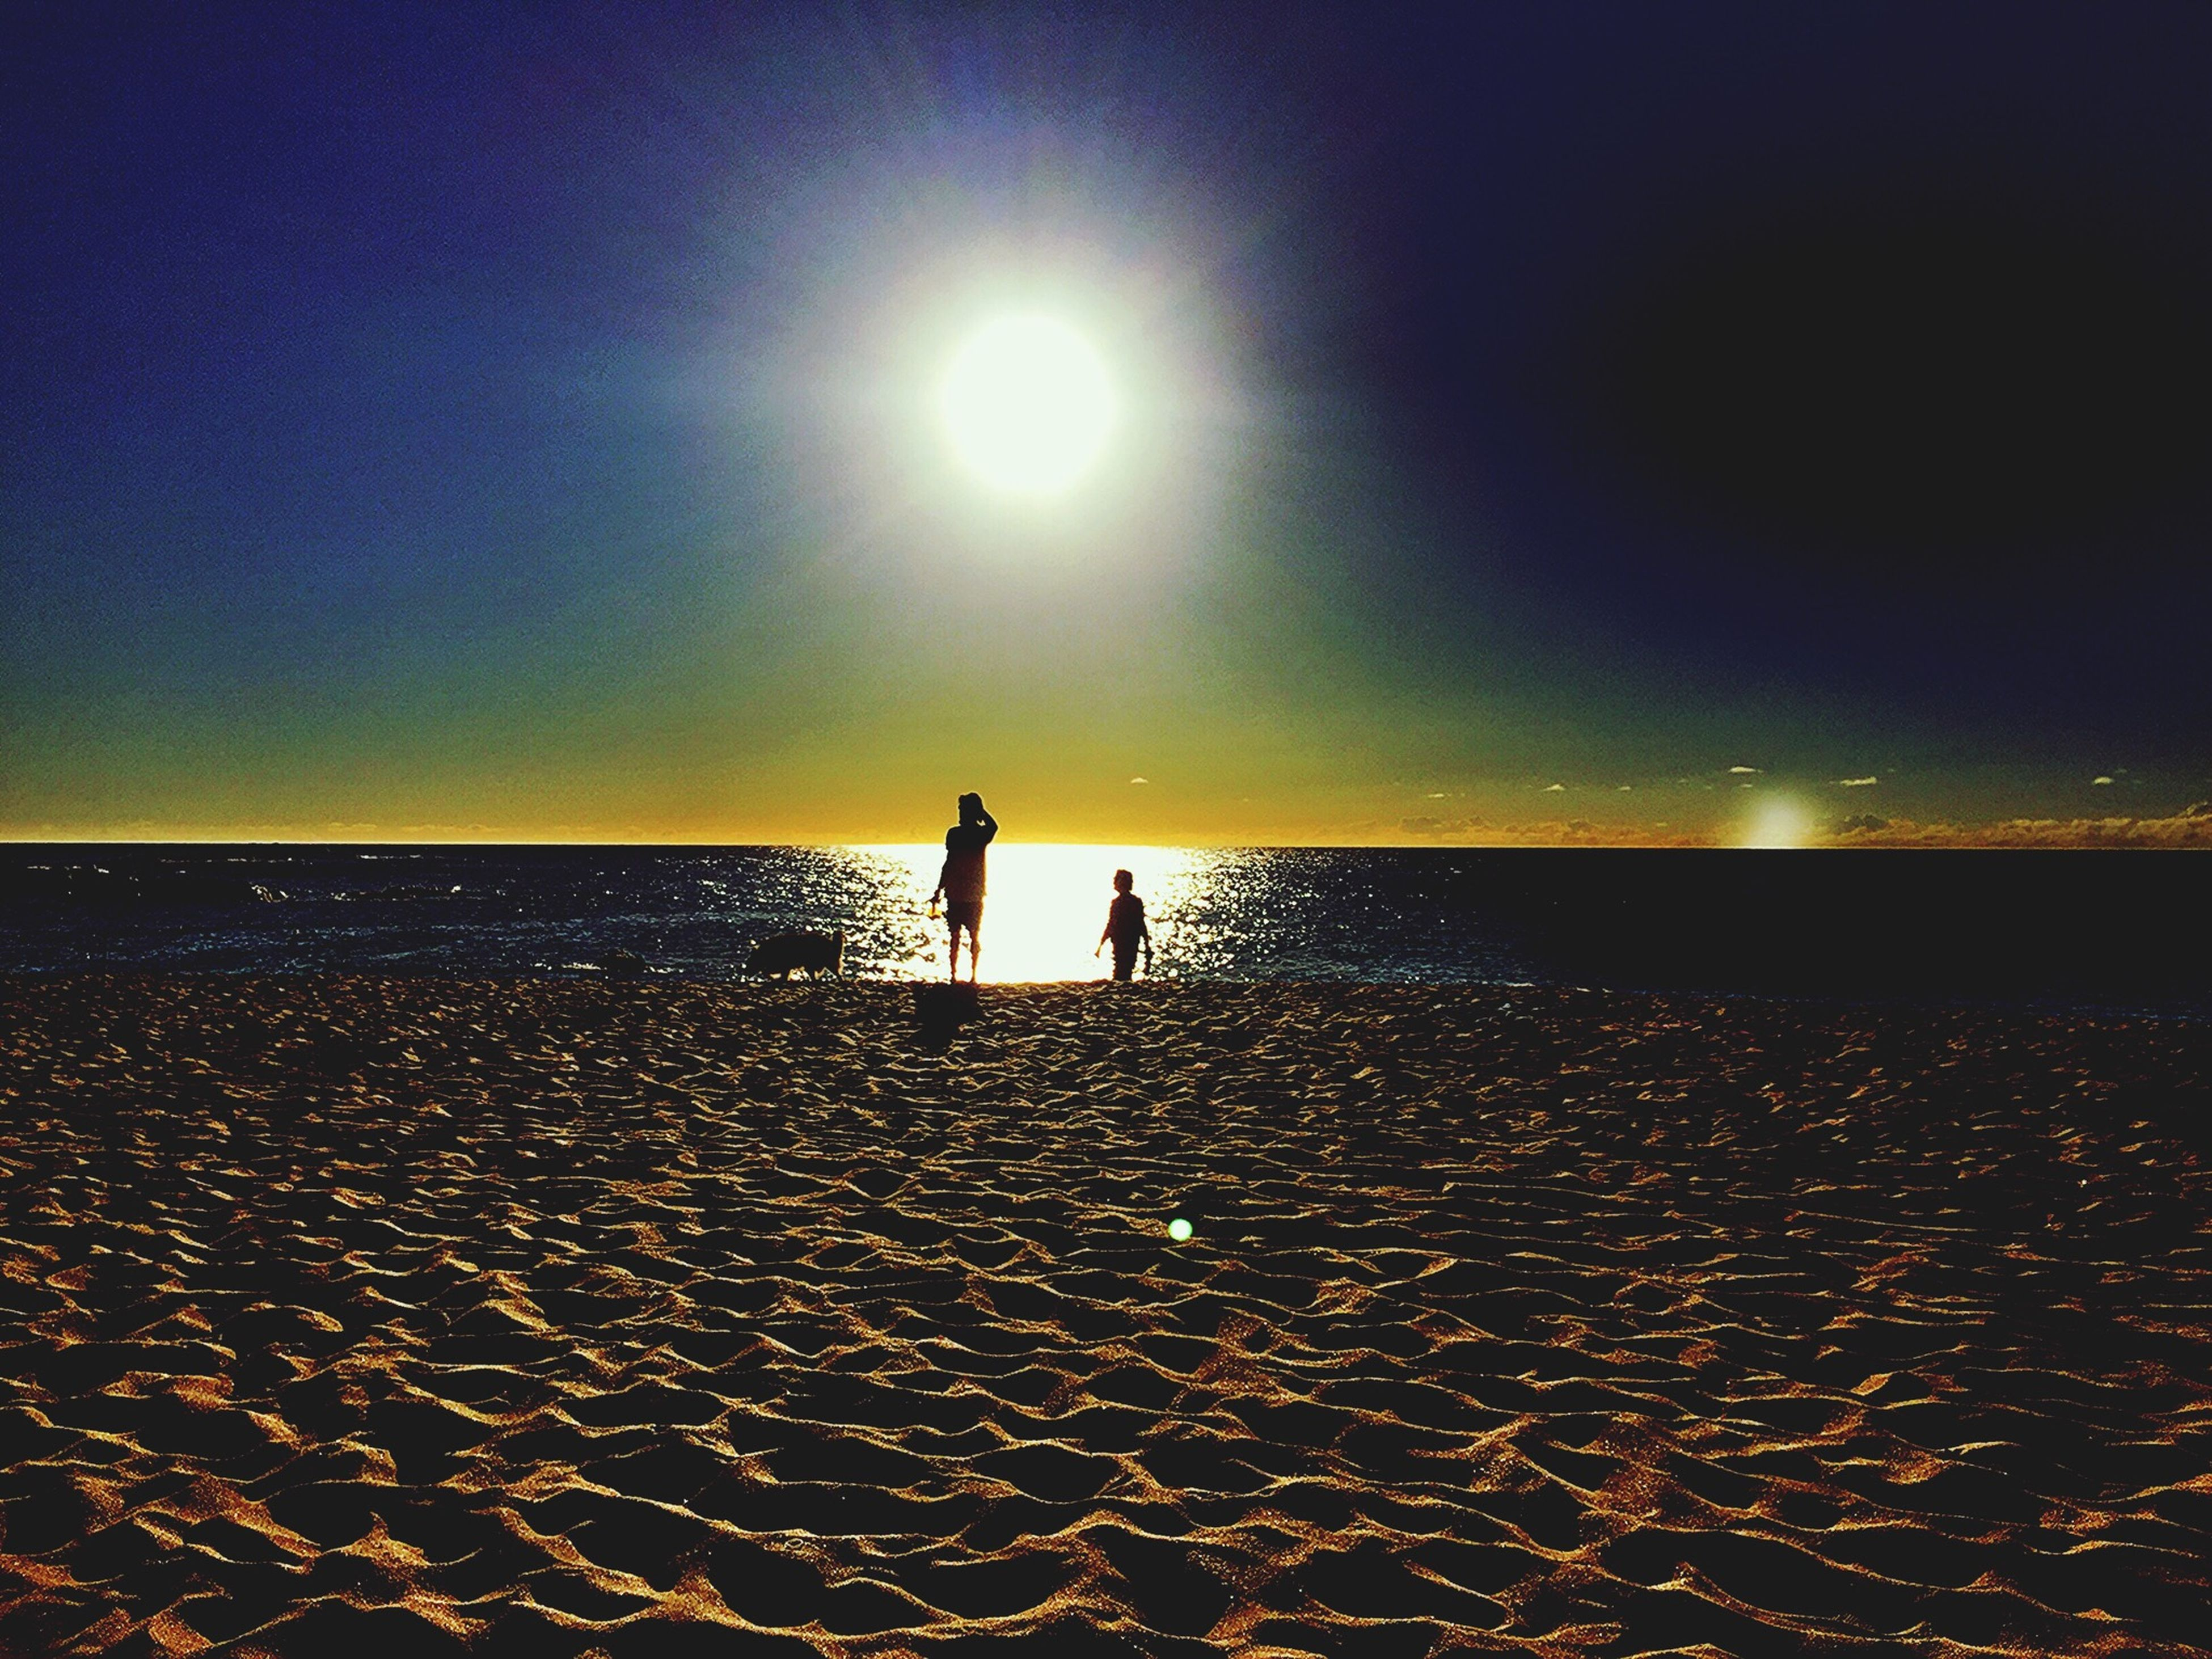 sea, water, beach, horizon over water, silhouette, sun, sunset, lifestyles, leisure activity, scenics, shore, tranquil scene, tranquility, togetherness, beauty in nature, sky, reflection, vacations